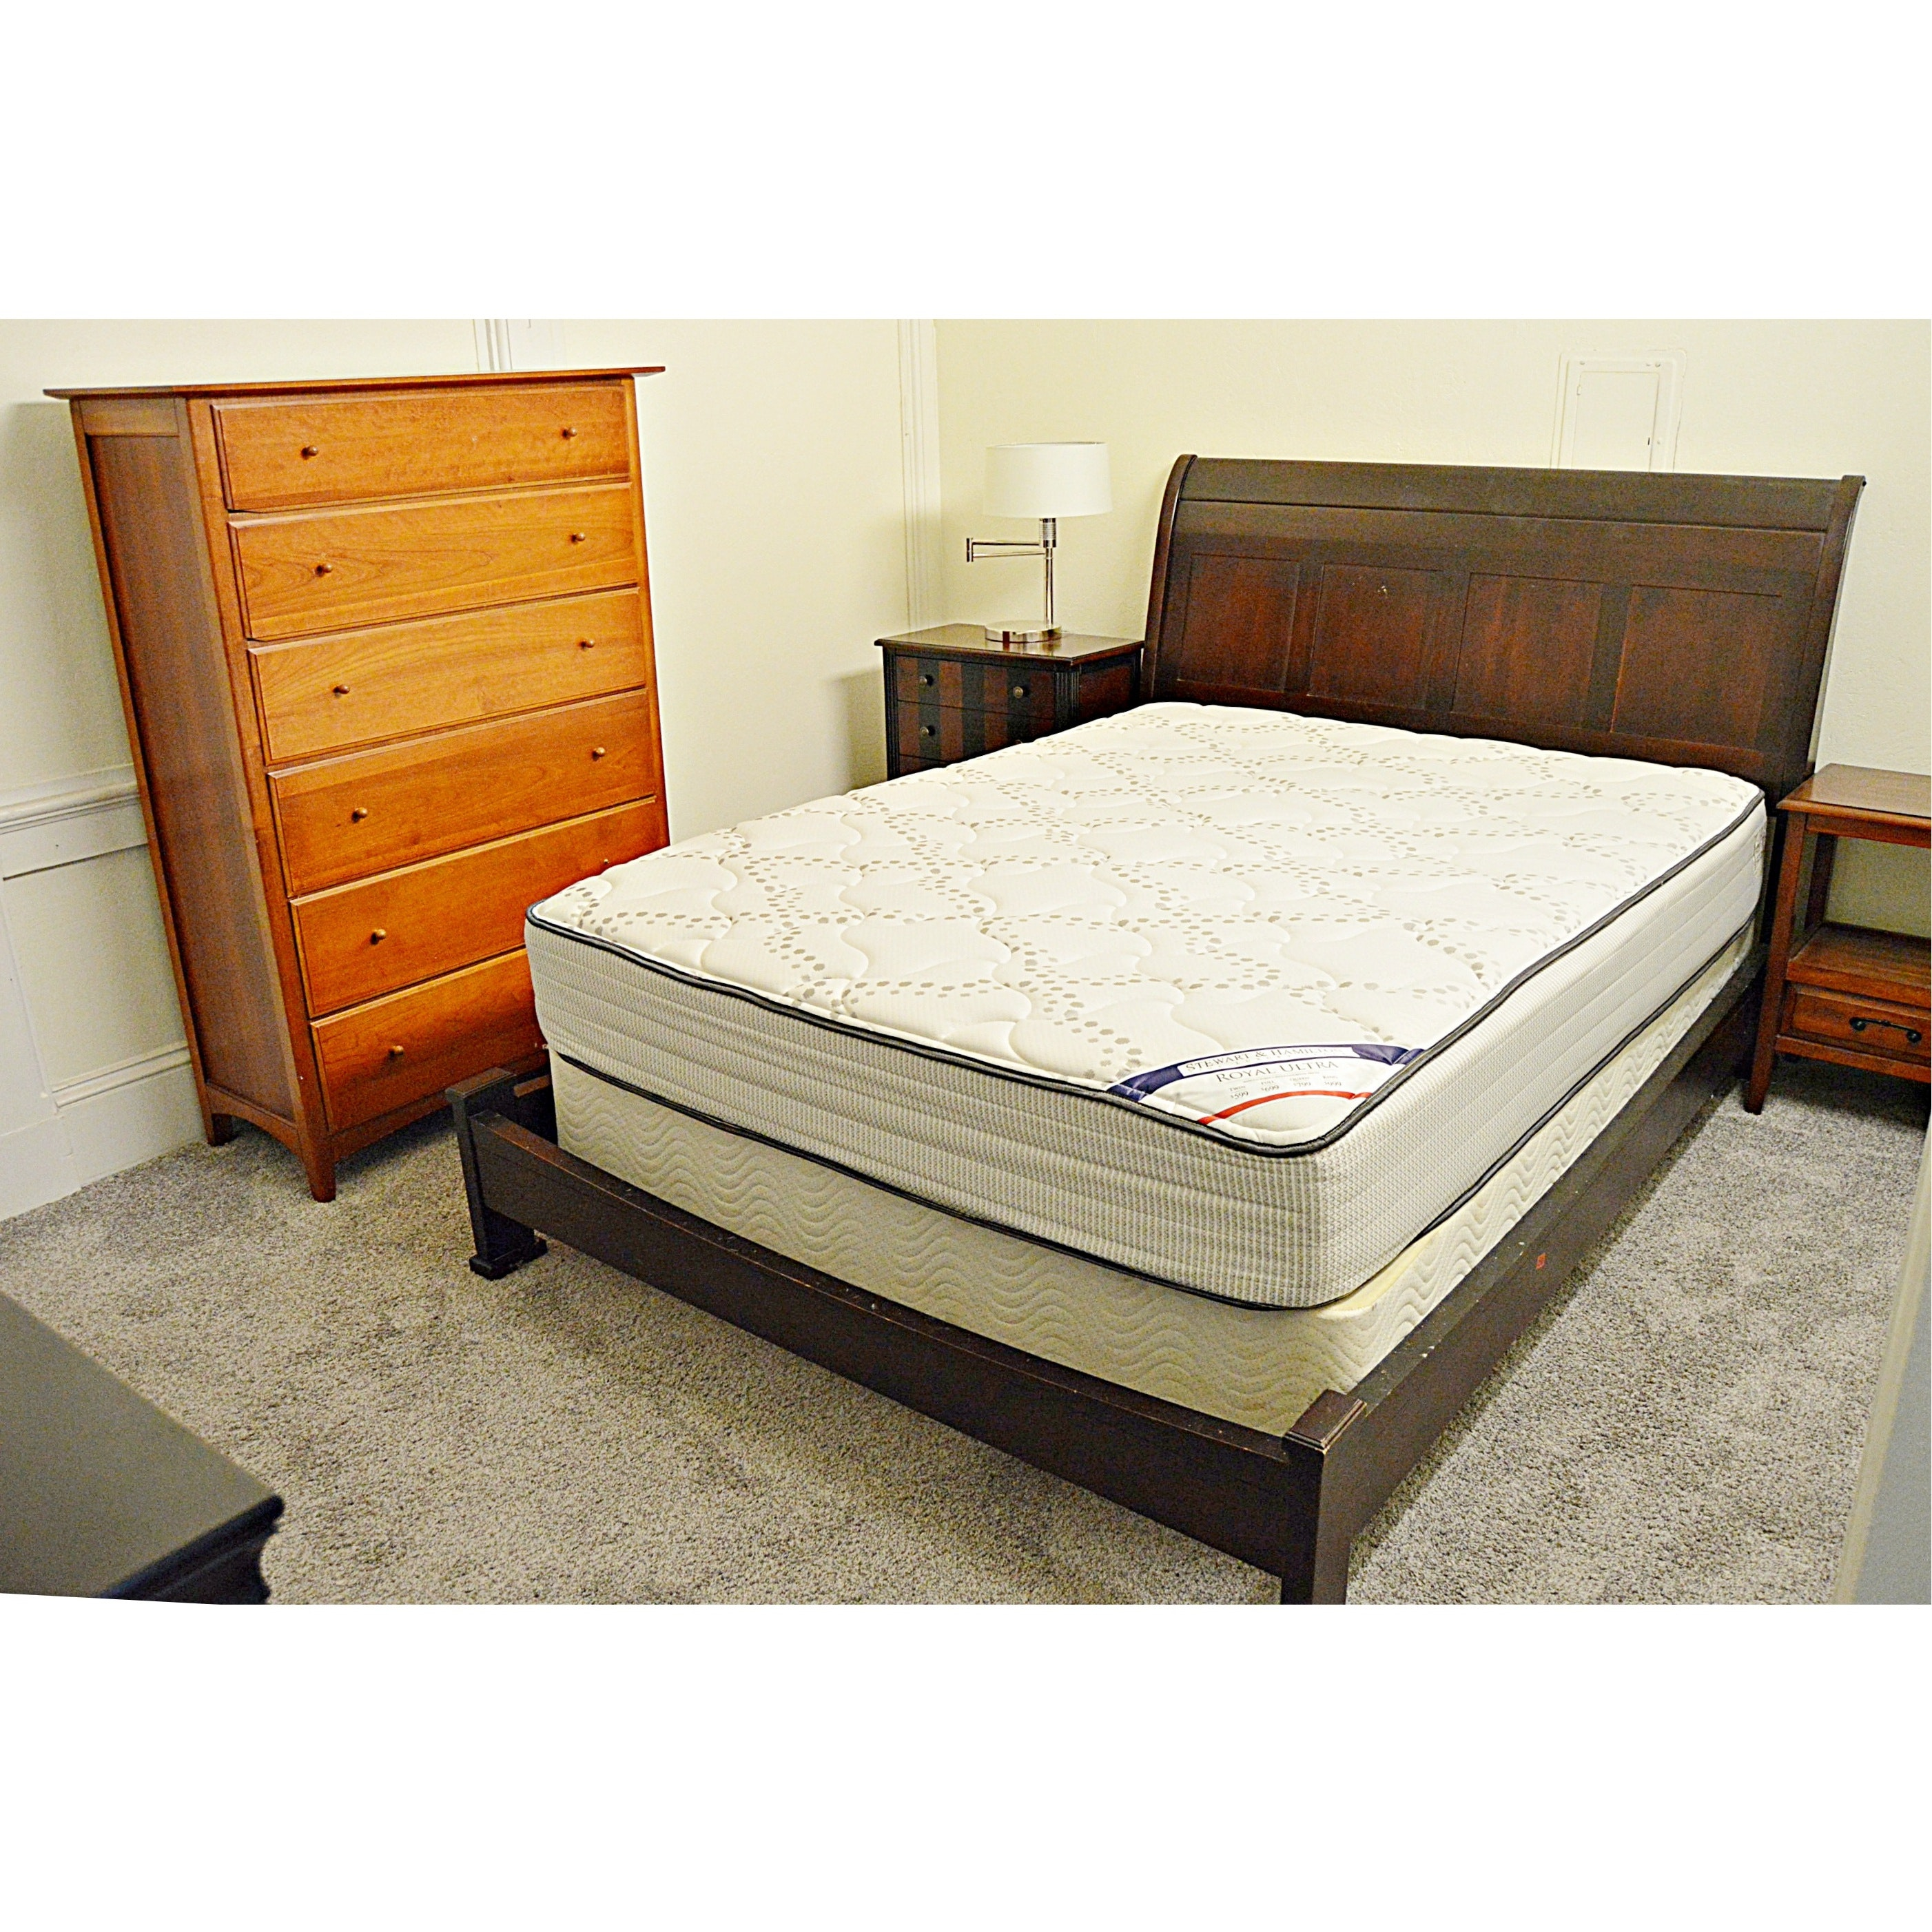 Selection of Contemporary Bedroom Furniture